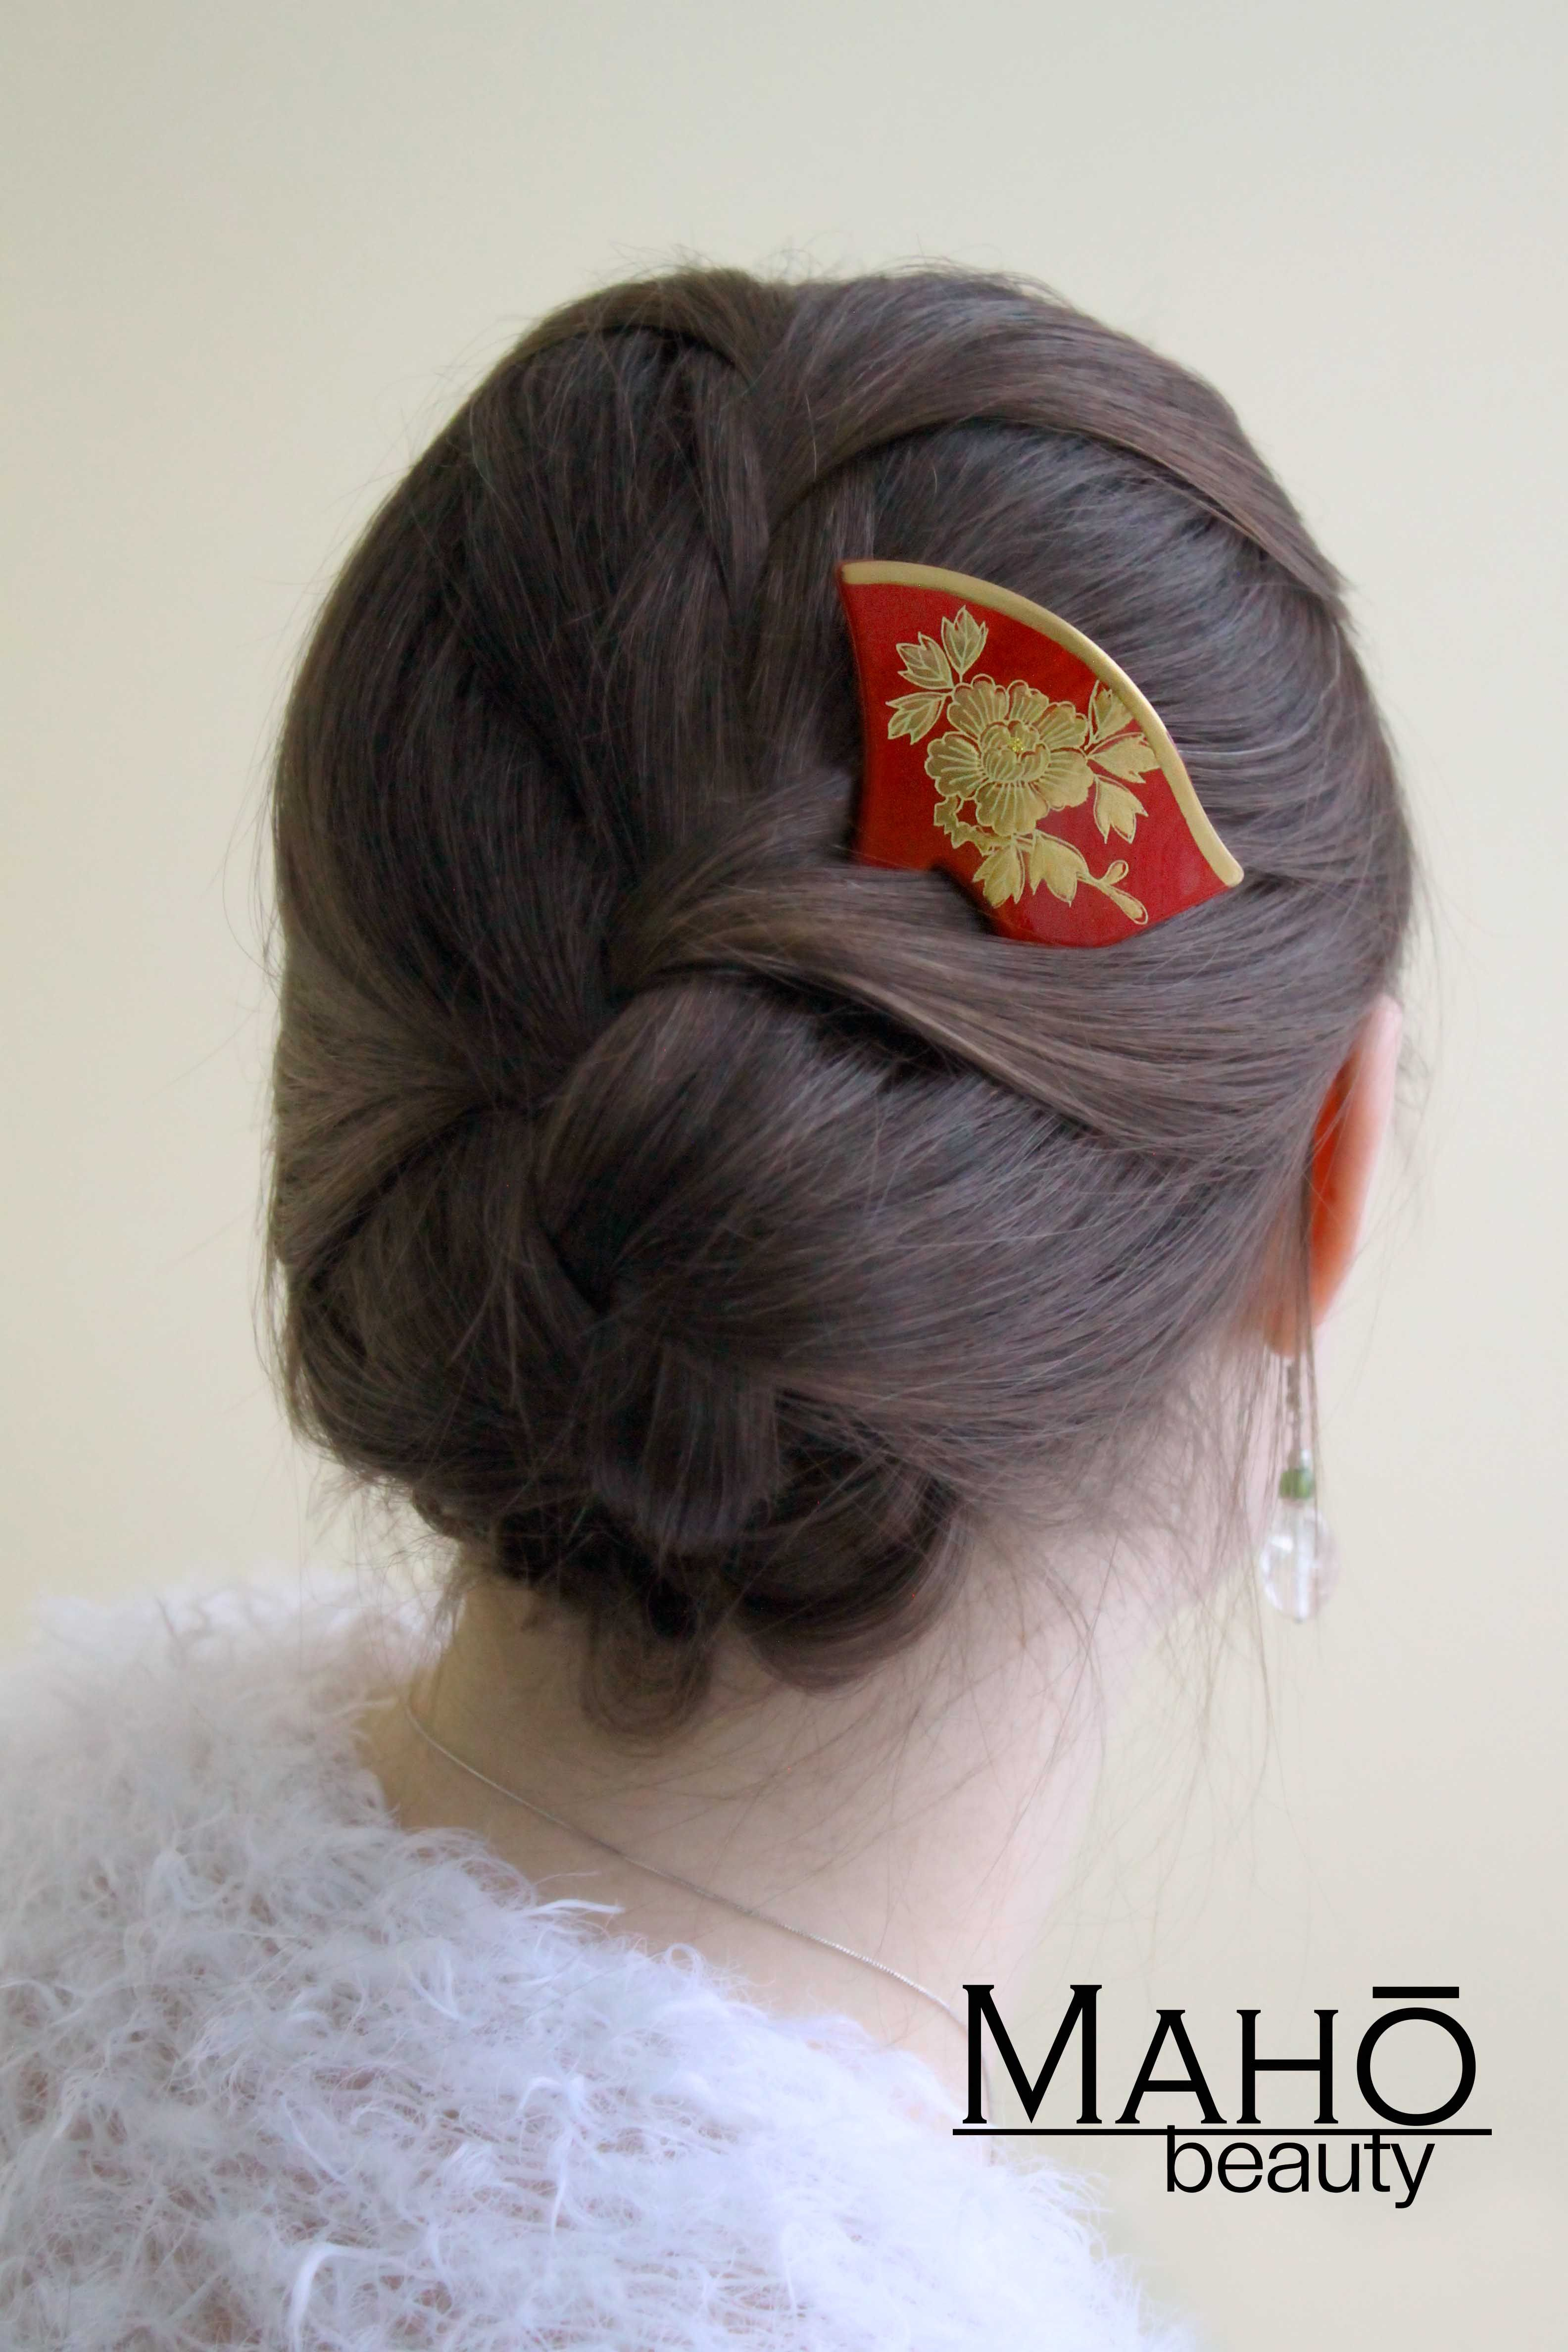 Traditional Japanese Hair Comb Kanzashi Peony Http Www Mahobeauty Com Index Php Route Japanese Hairstyle Traditional Hairstyle Japanese Hairstyle Traditional